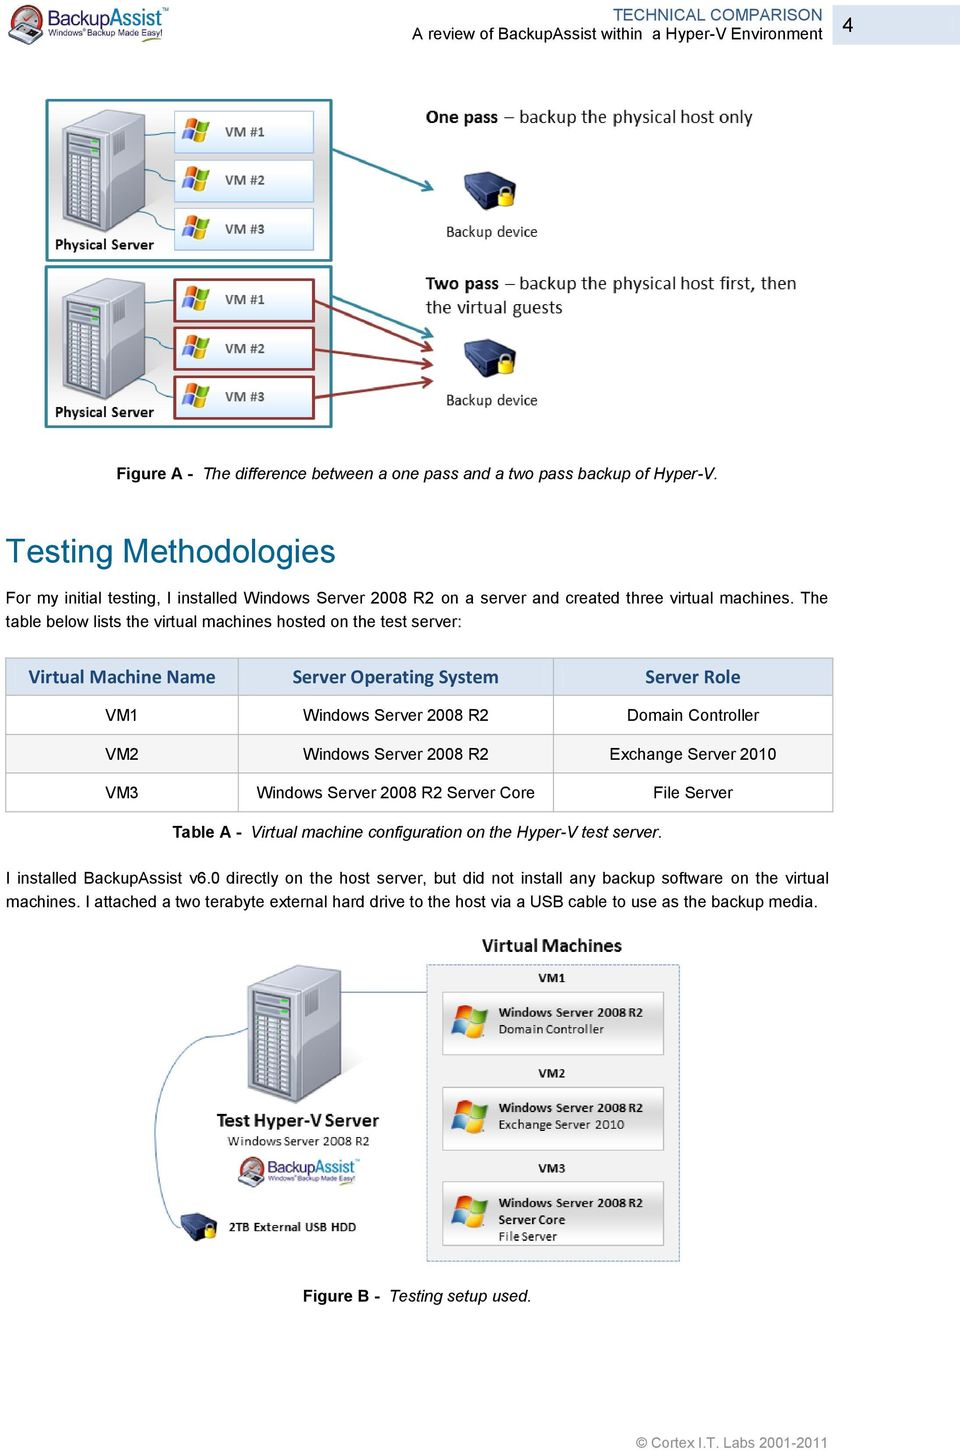 The table below lists the virtual machines hosted on the test server: Virtual Machine Name Server Operating System Server Role VM1 Windows Server 2008 R2 Domain Controller VM2 Windows Server 2008 R2